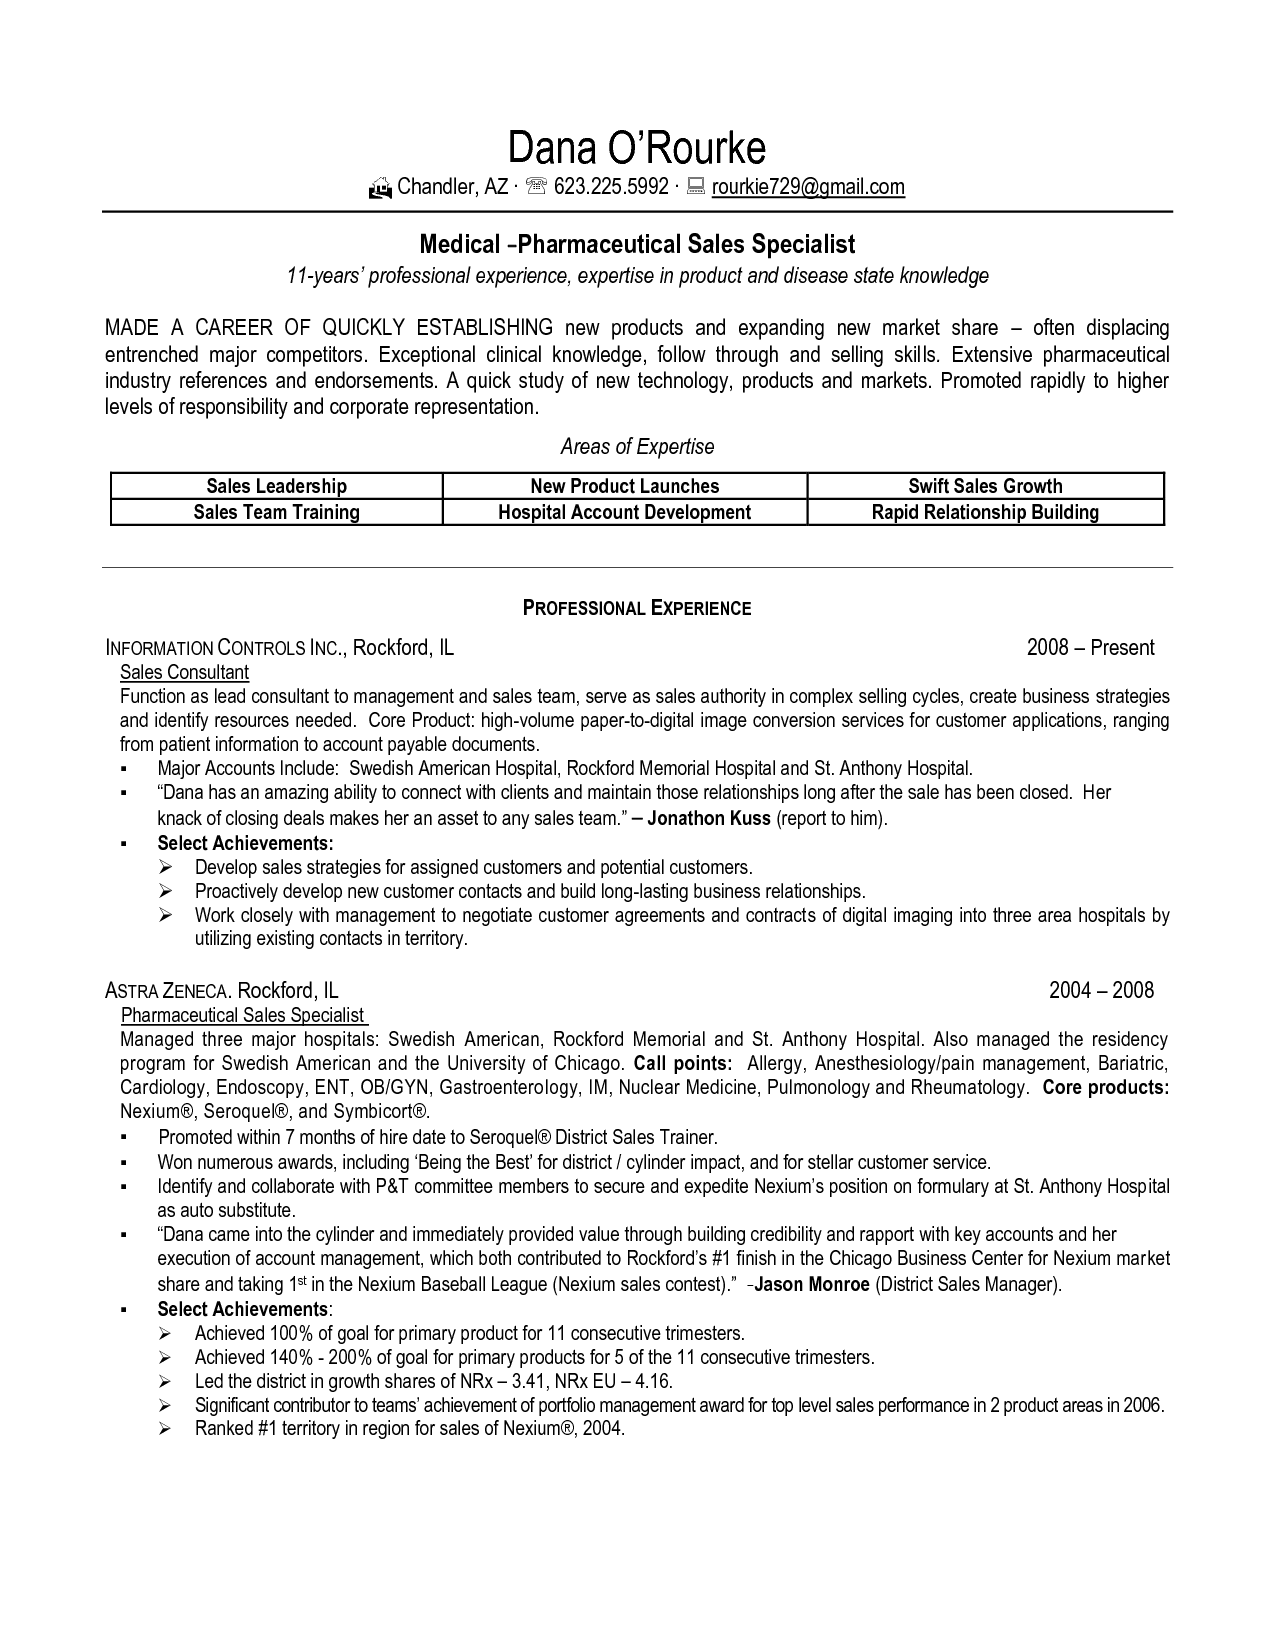 Basic Resume Templates Mesmerizing Sample Resume For Pharmaceutical Industry Sample Resume For